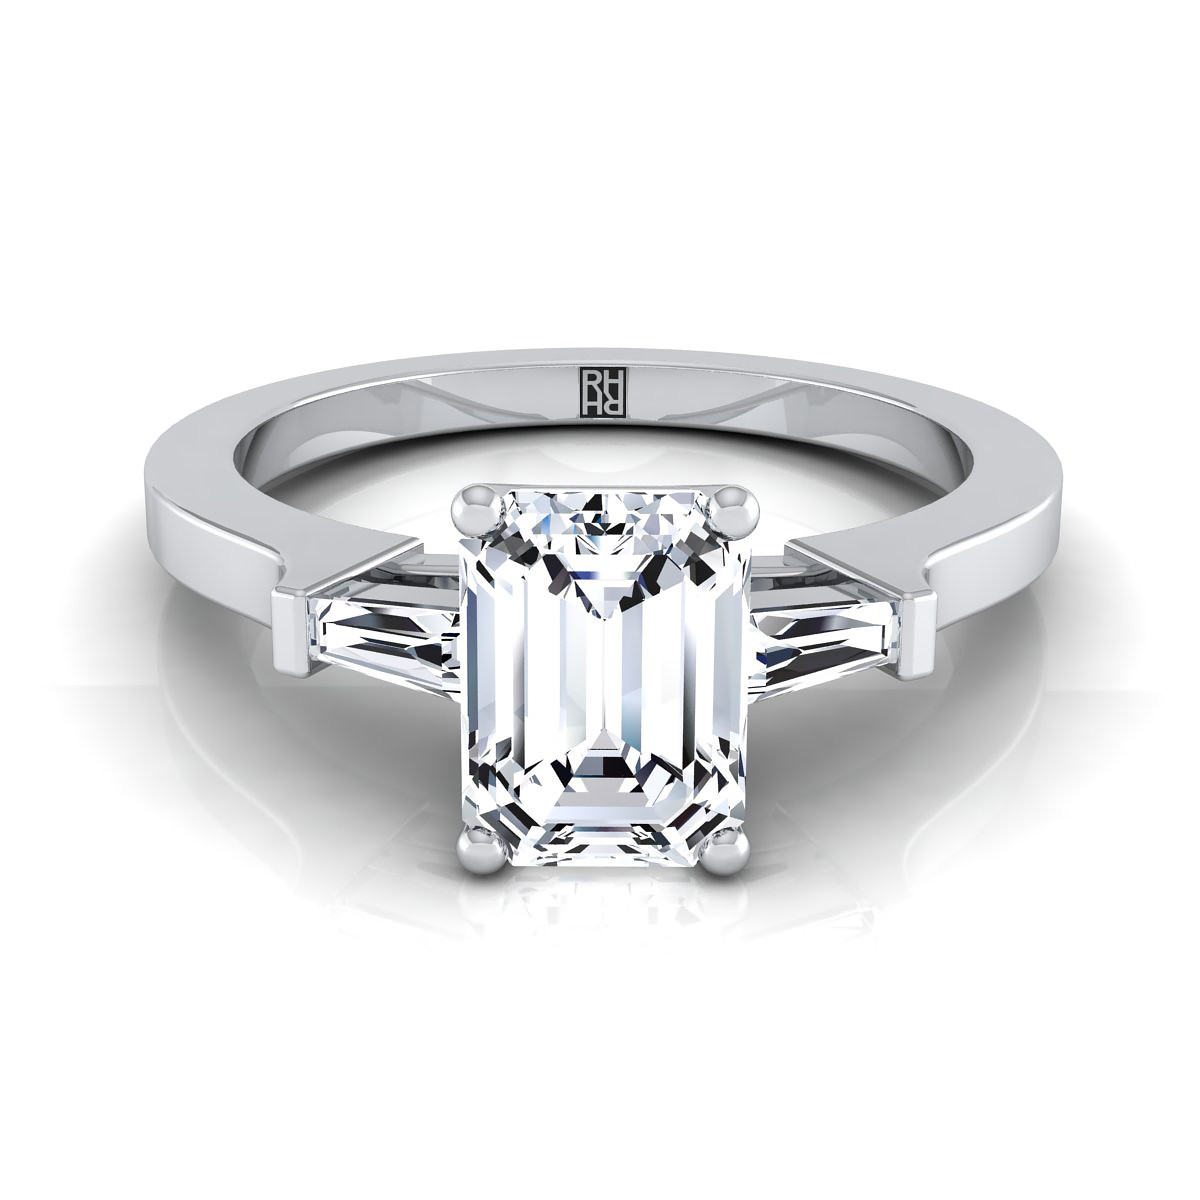 Diamond Engagement Ring With Emerald Cut Center And Tapered Baguette Side  Stones In Platinum (1/4 Ct.tw.) With Regard To Emerald Cut Engagement Rings With Tapered Baguette Side Stones (Gallery 1 of 25)